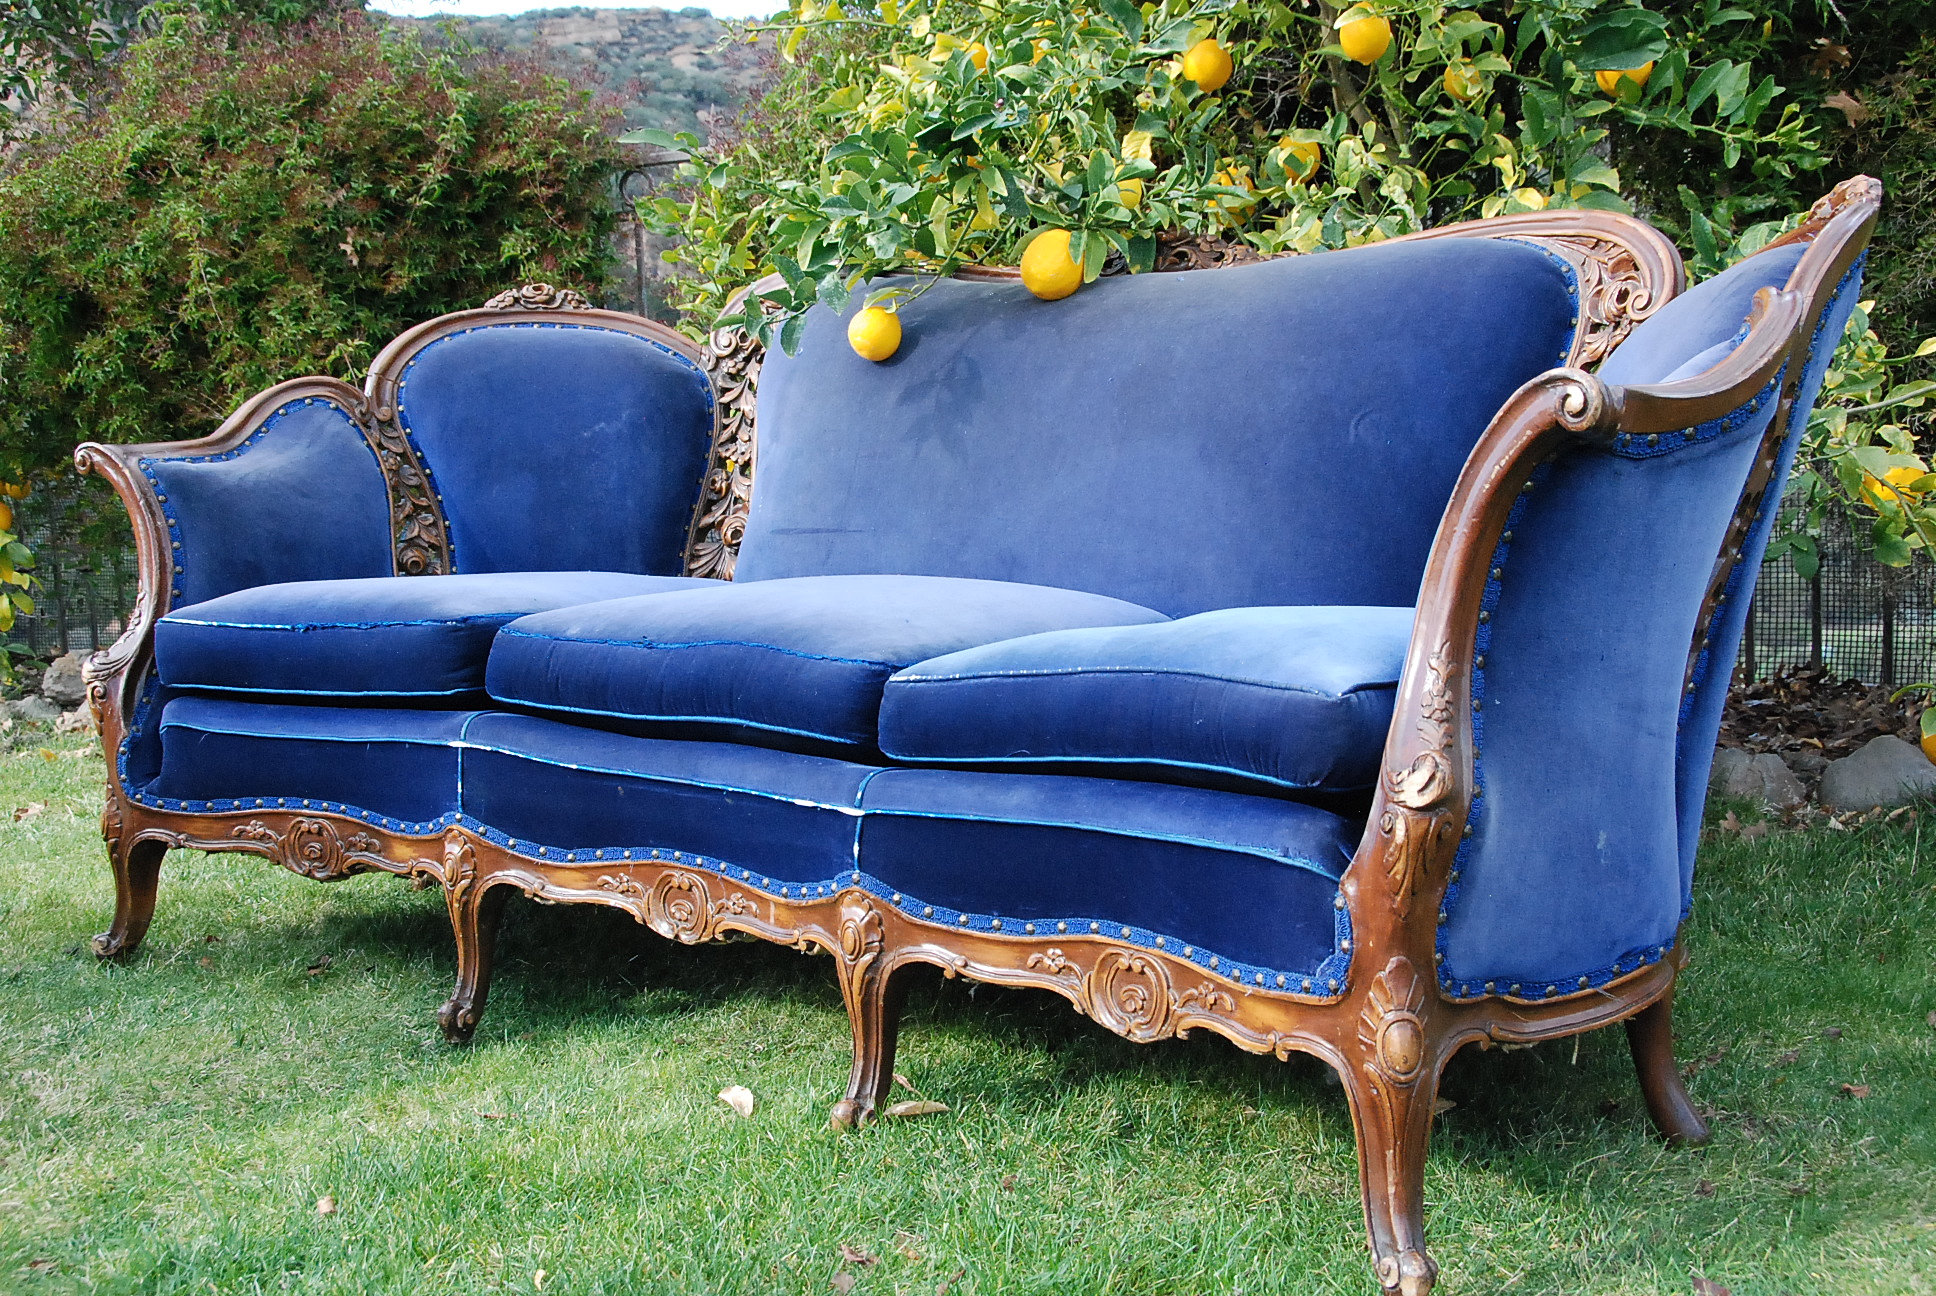 Salt Buffalo Vintage Furniture Rental Royal Blue Velvet Sofa